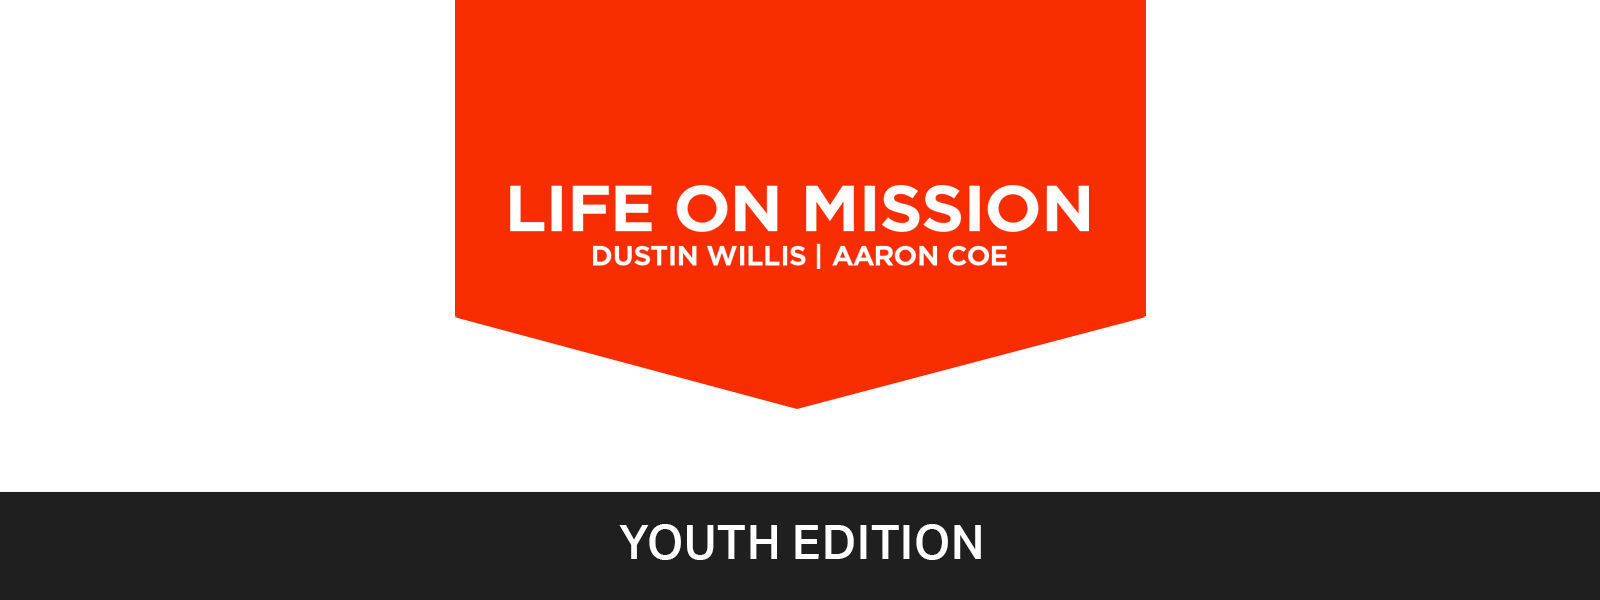 Life On Mission - Youth Edition